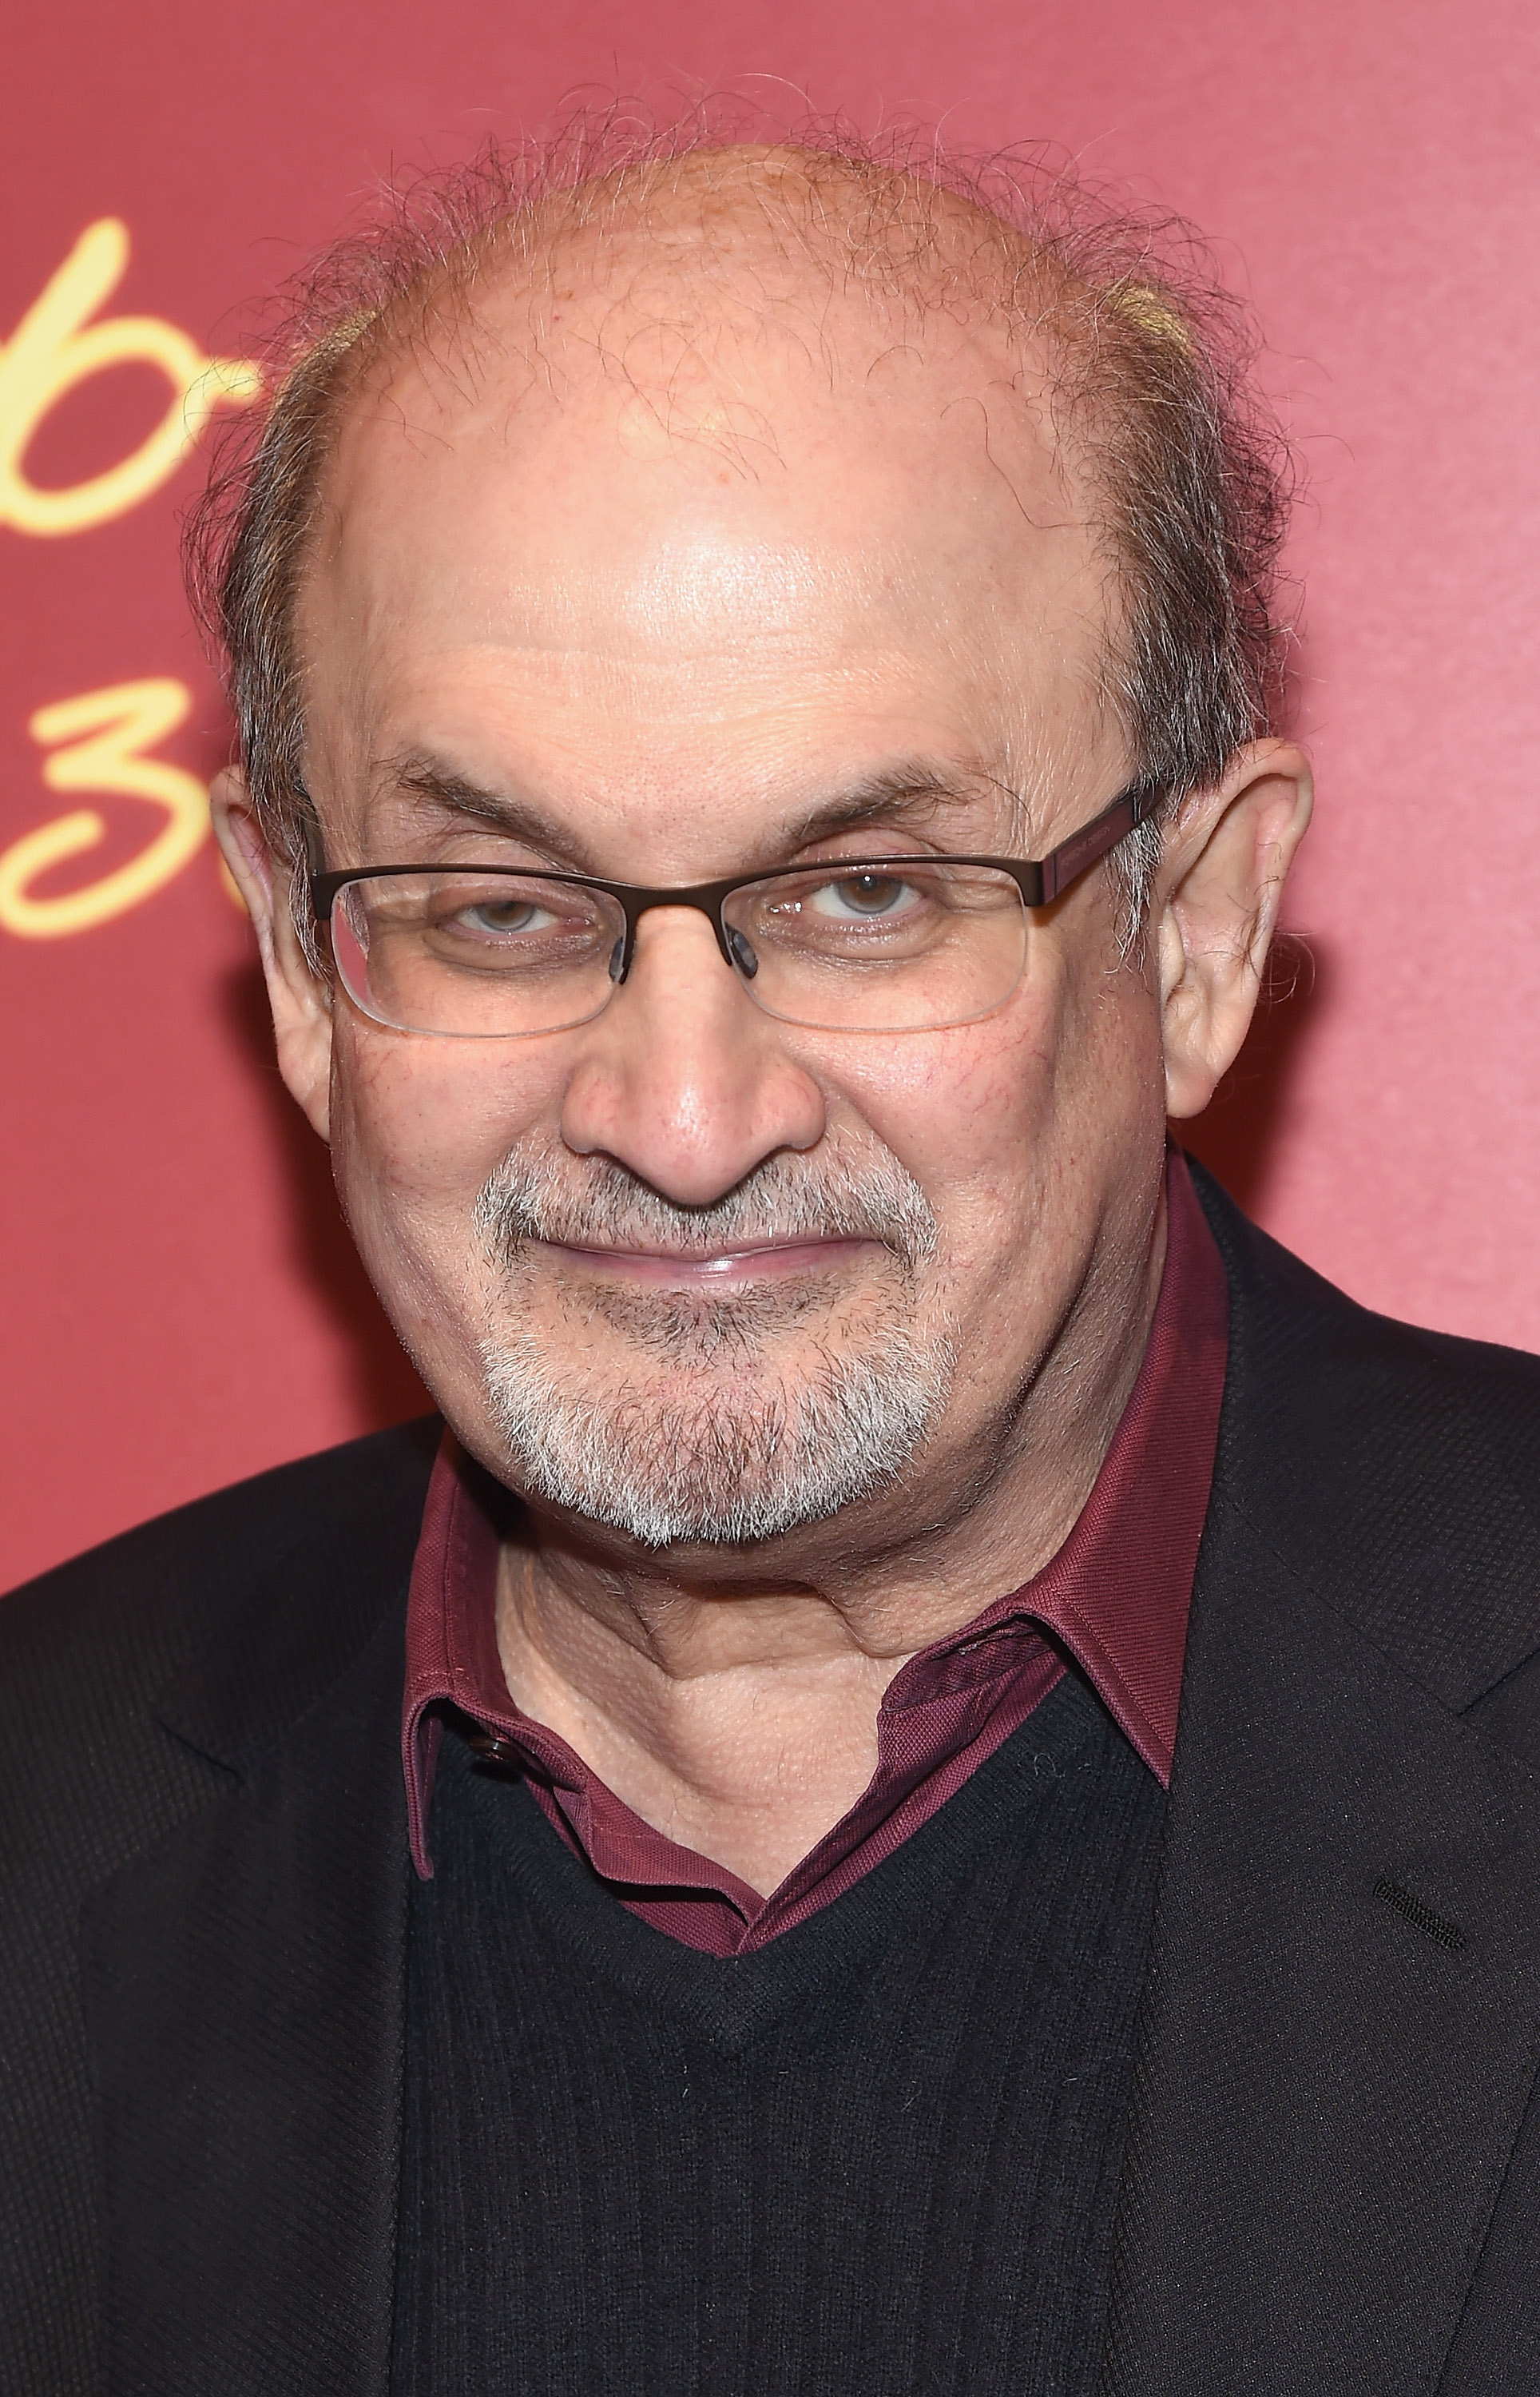 Salman Rushdie attends Indochine's 30th Anniversary Party at Indochine on November 7, 2014 in New York City.